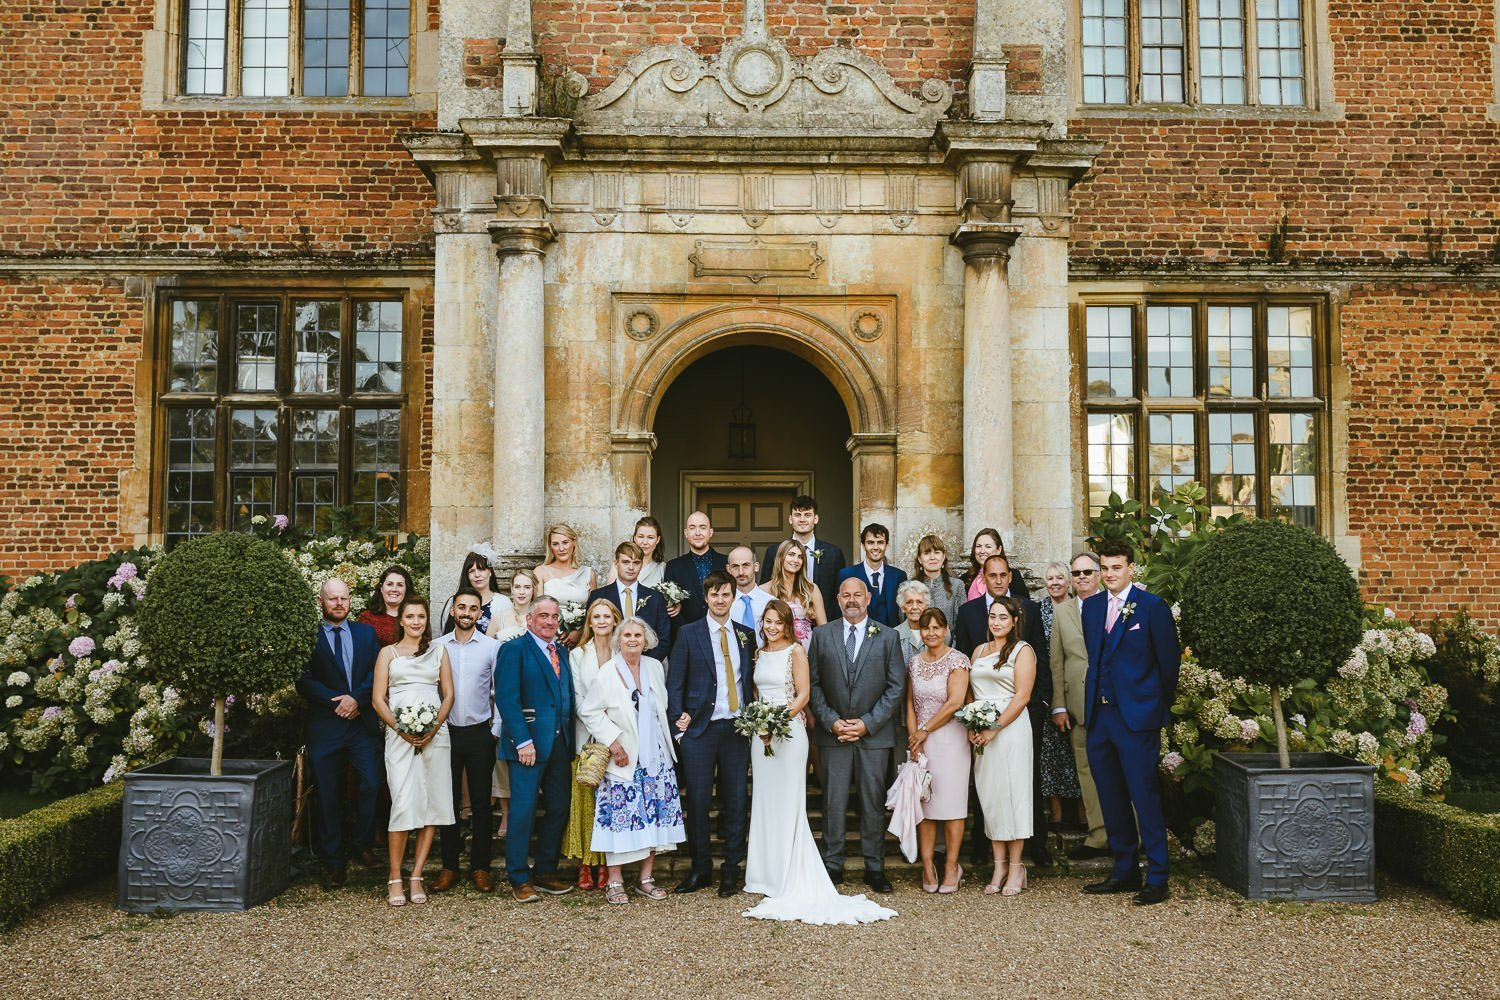 Doddington Hall wedding group photograph